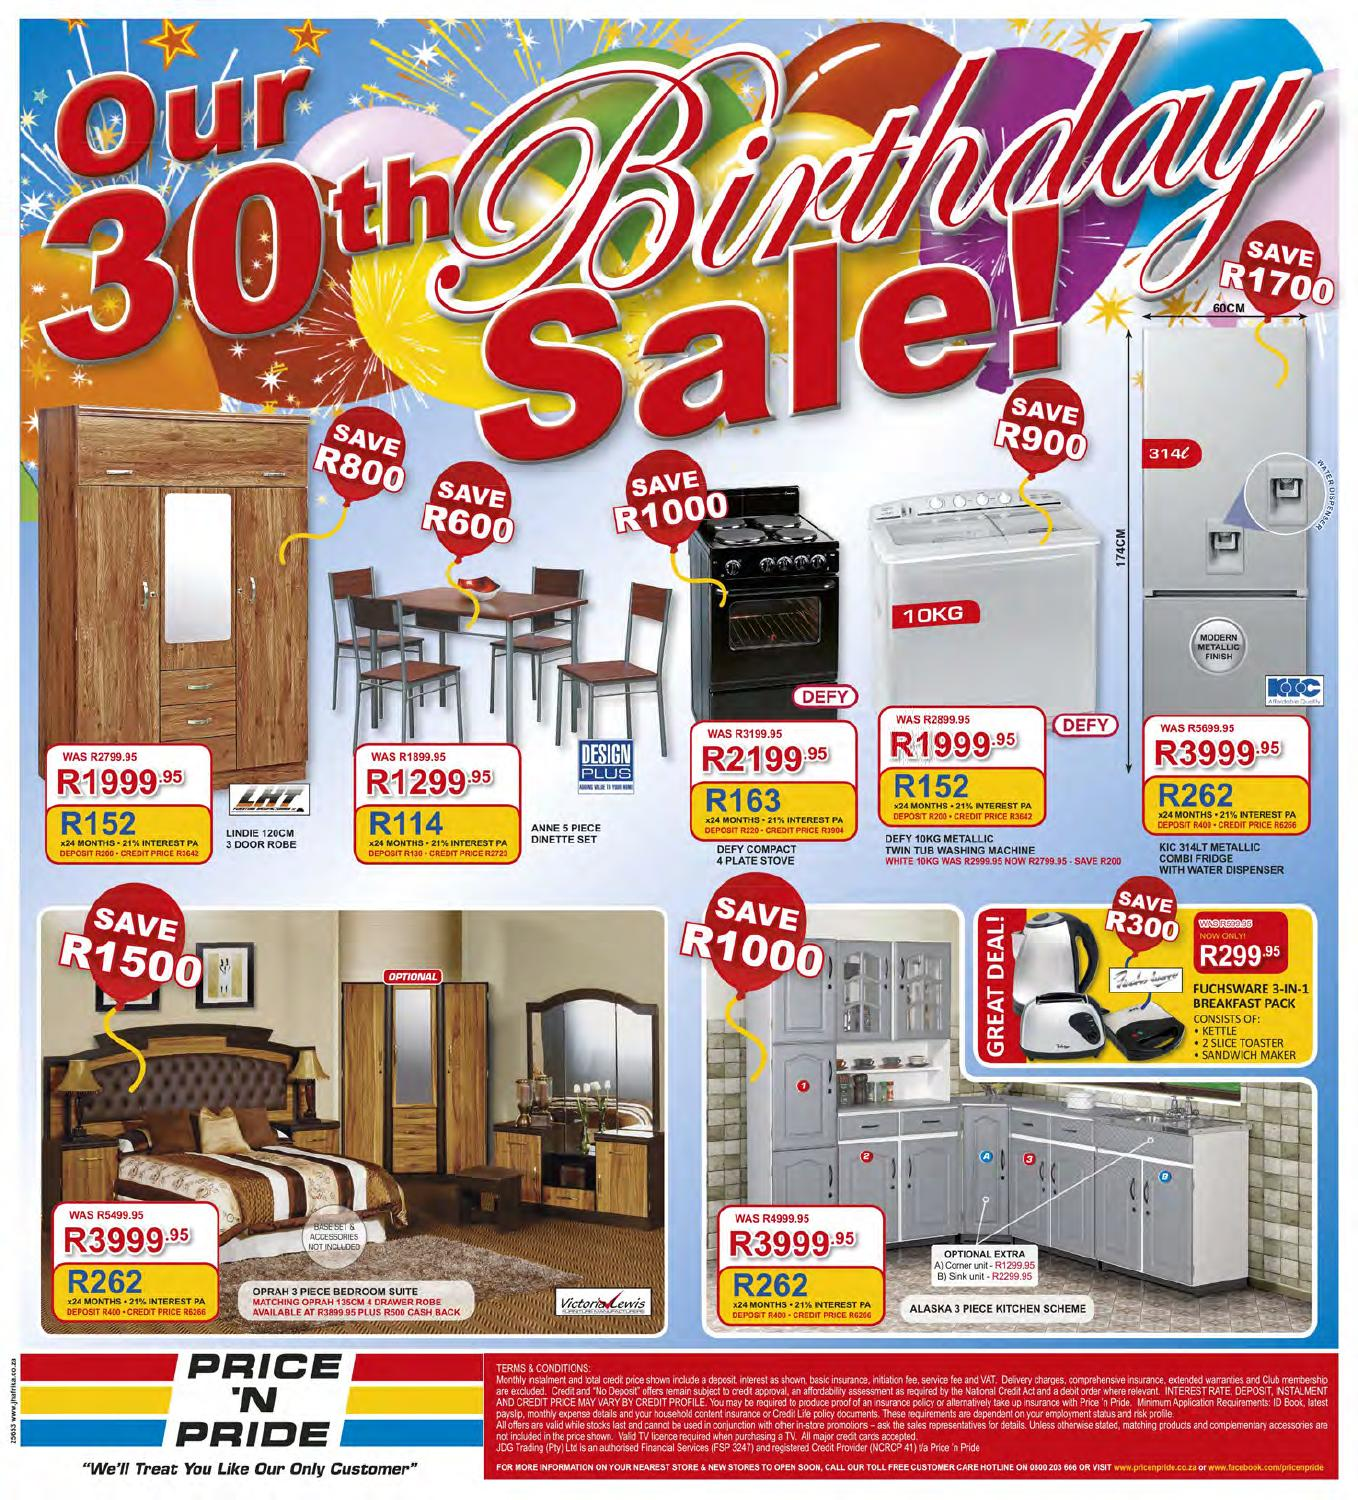 Price N Pride Birthday Specials Catalogue By Jd Group Issuu